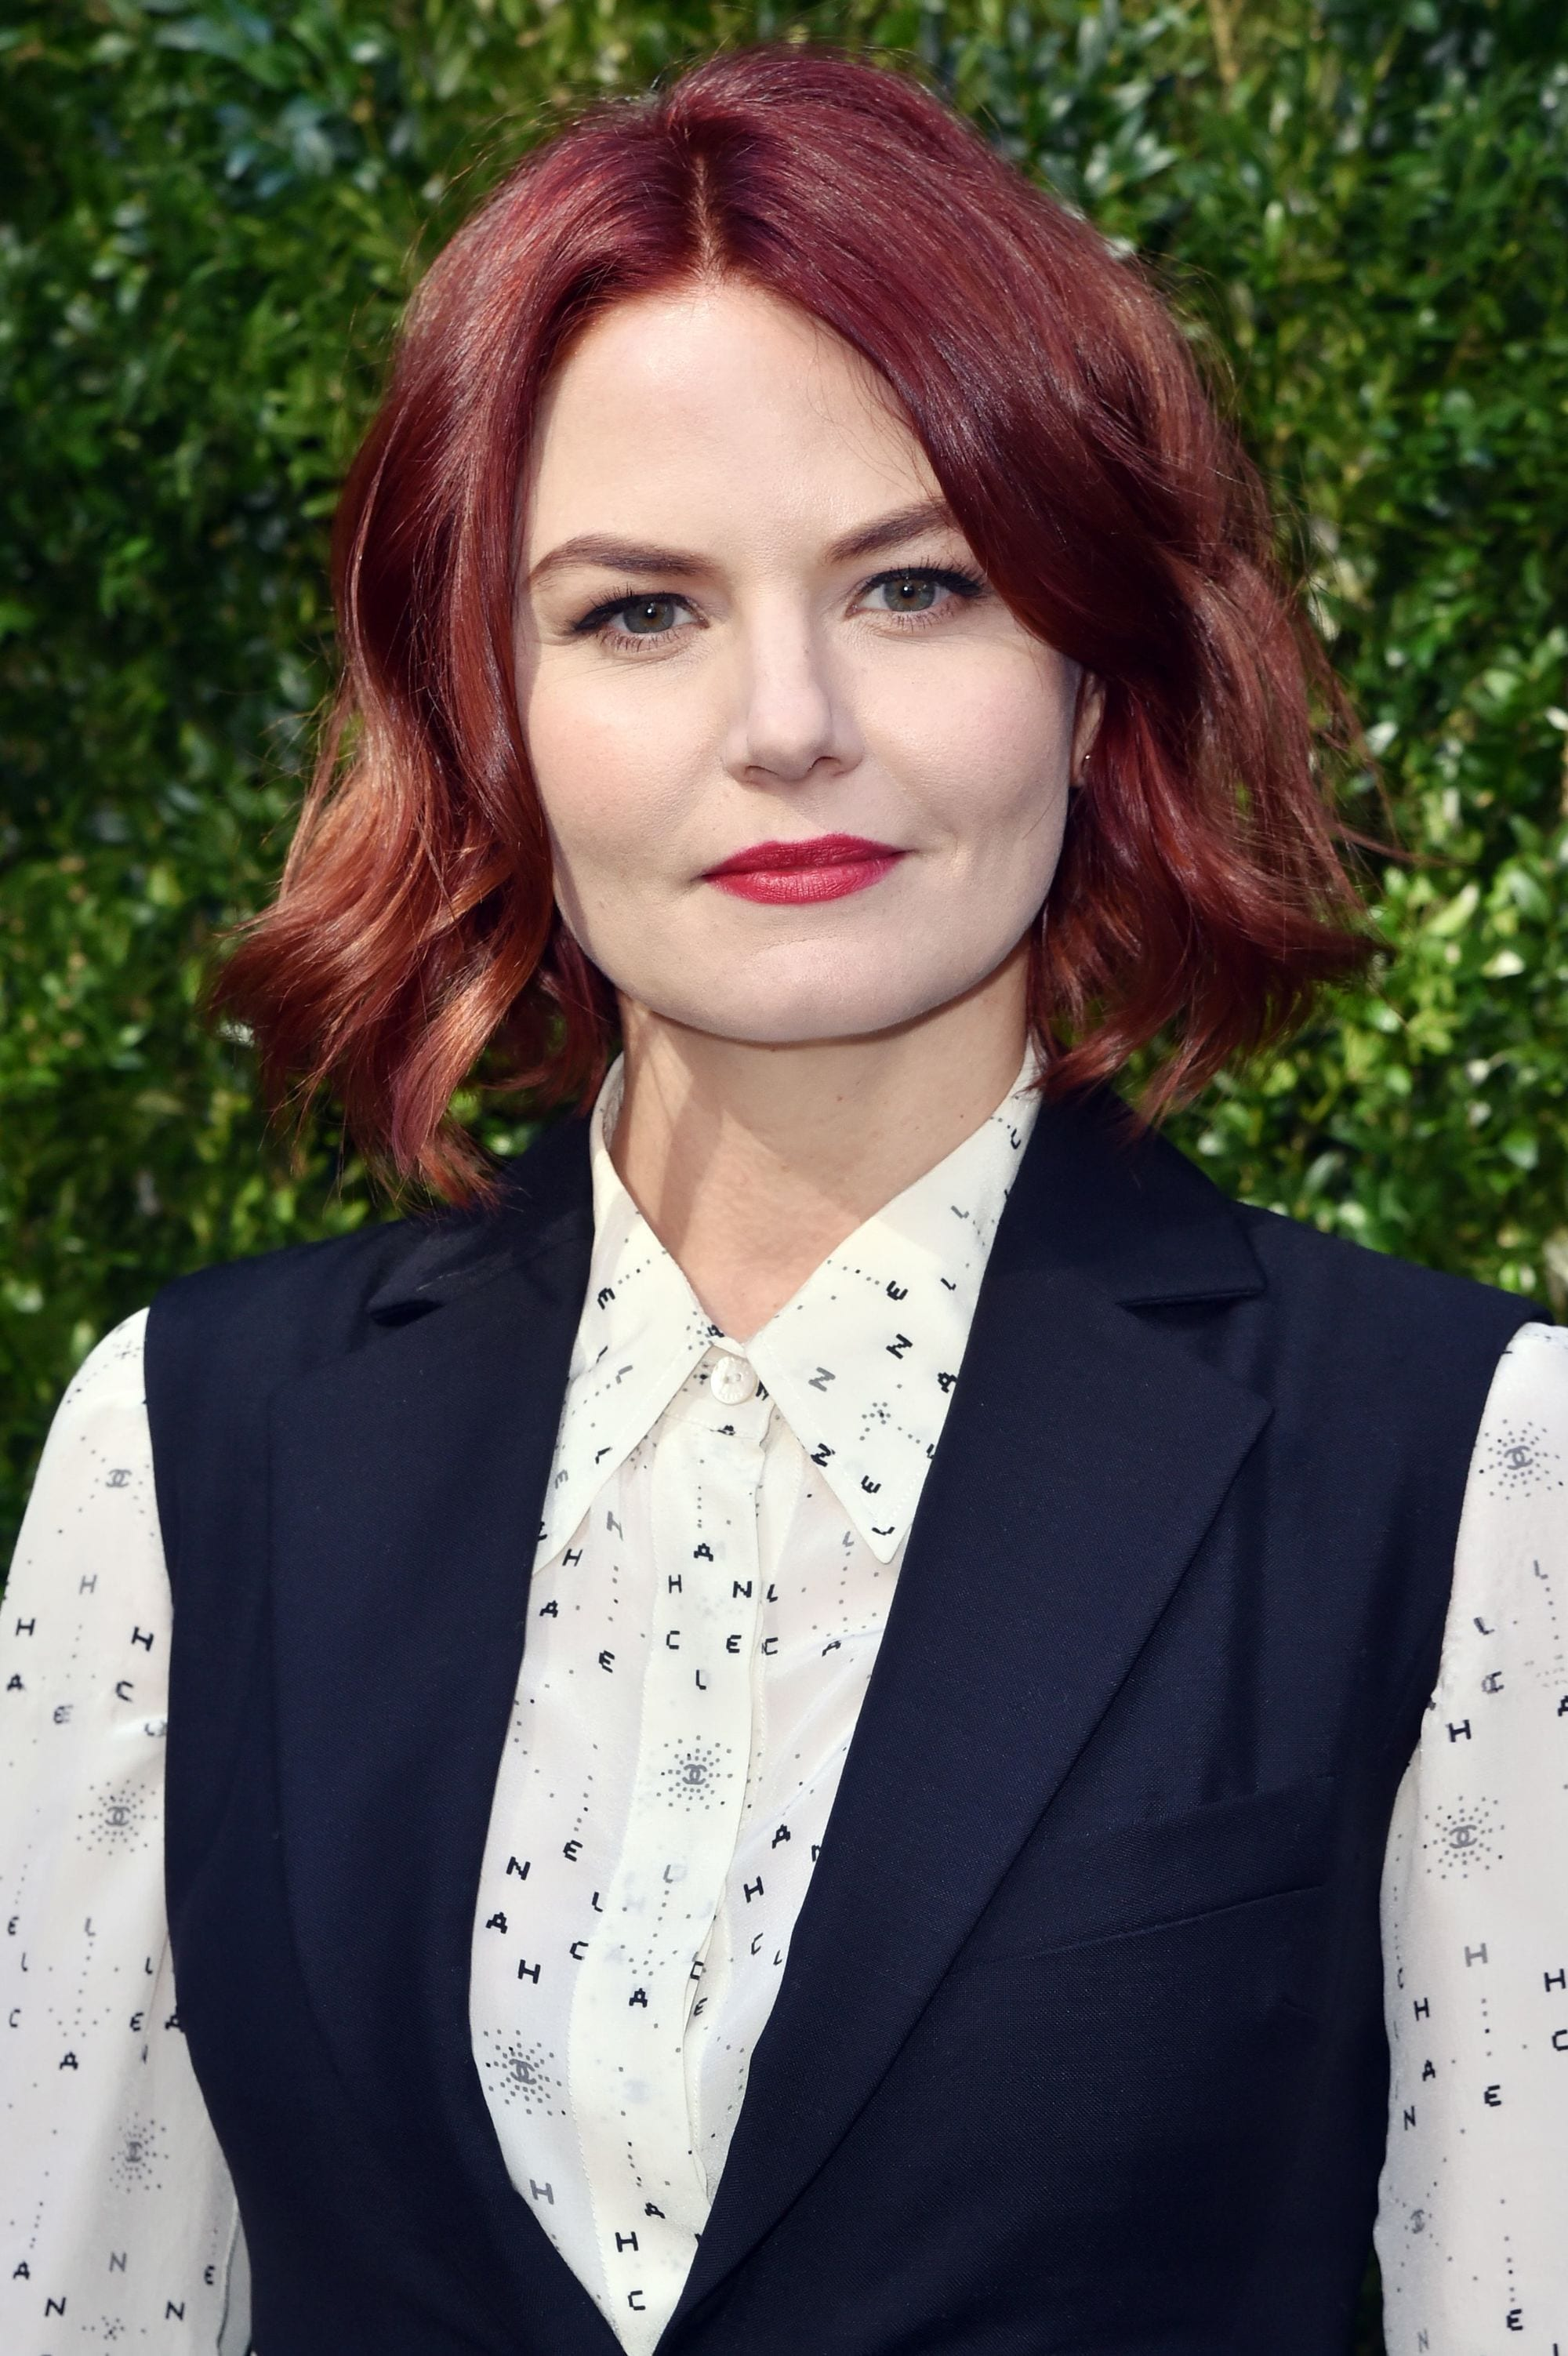 once upon a time and house actress jennifer morrison with red hair at the chanel tribeca lunch